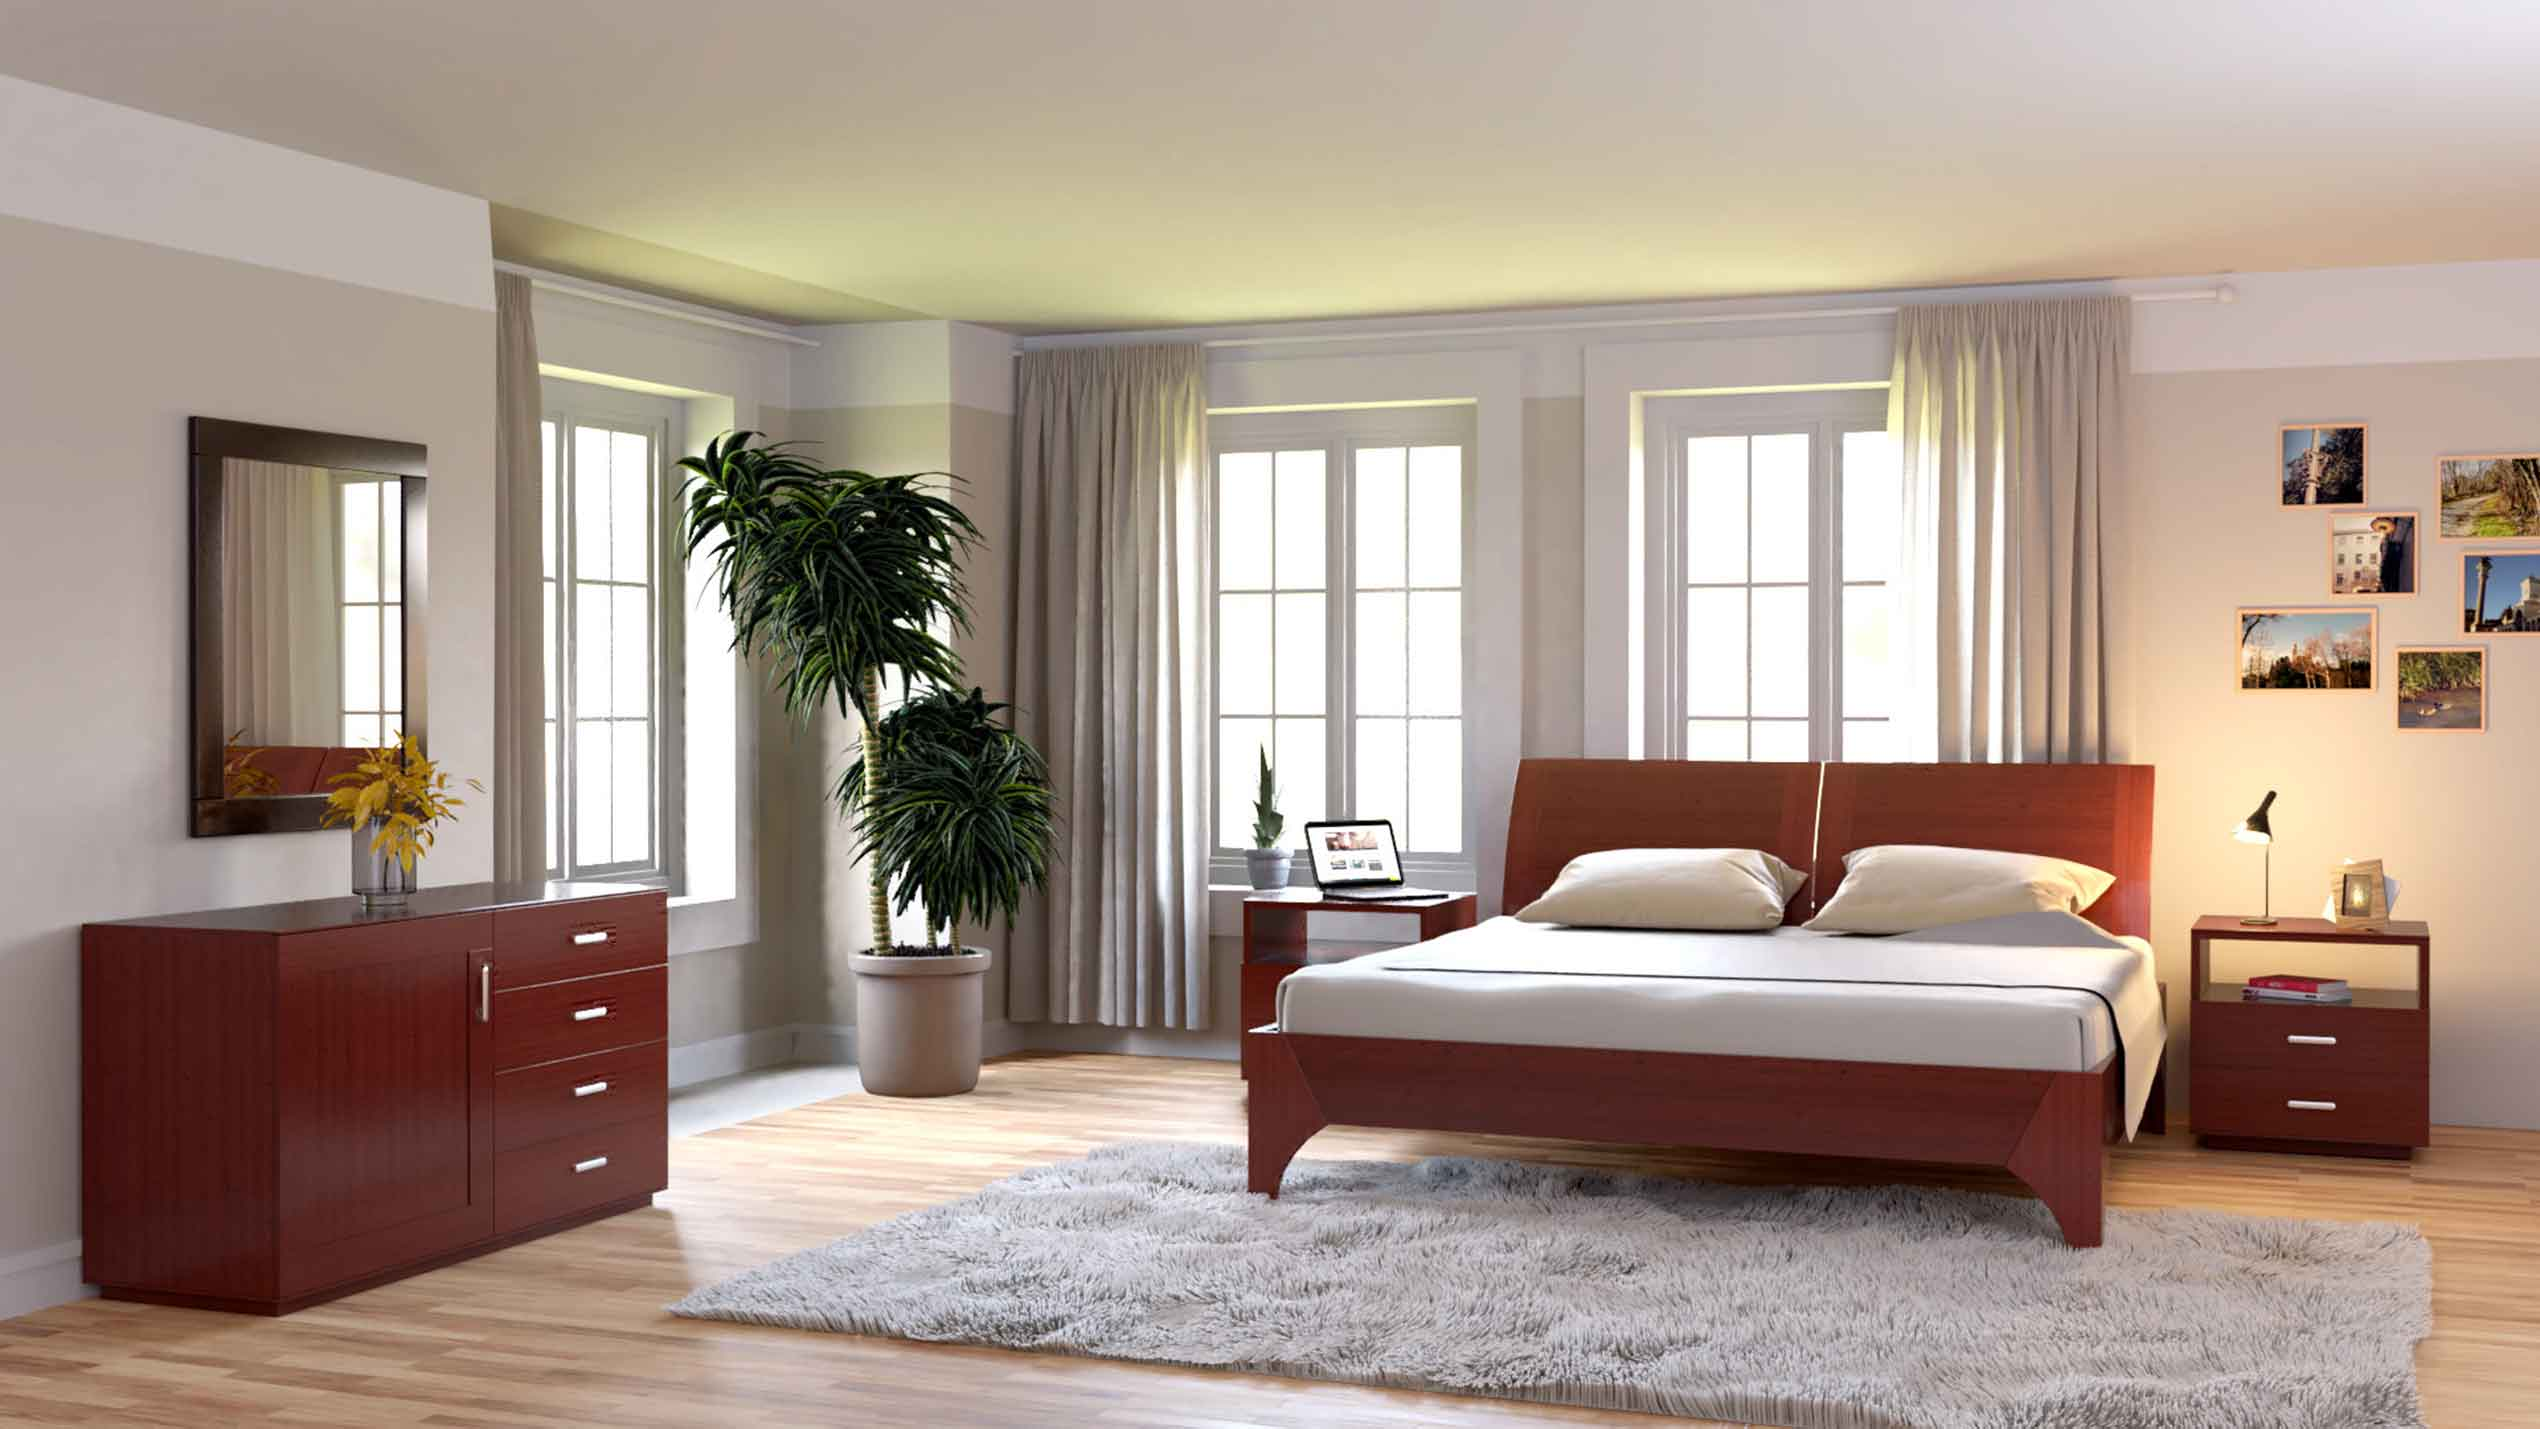 The Waldeck 5 piece bedroom set from Quagga Designs